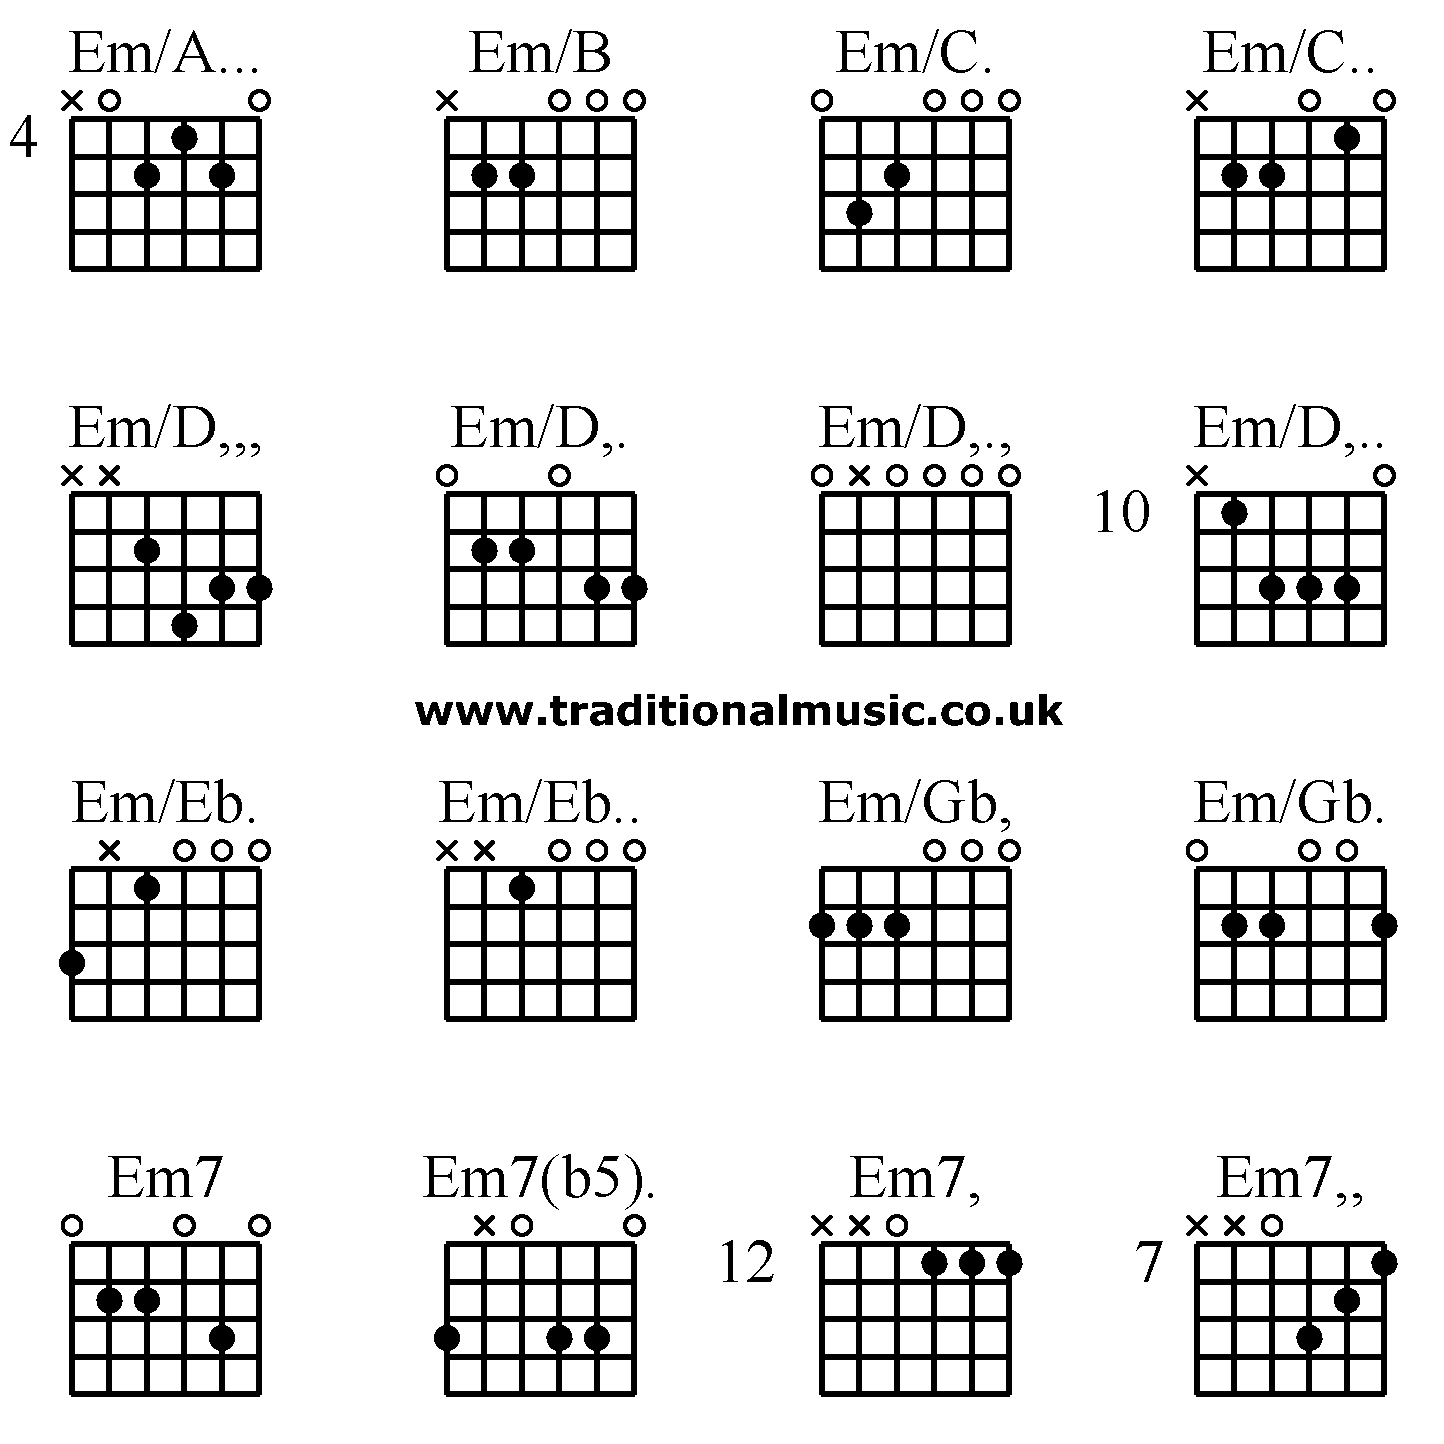 Chords For Guitar Guitar Chords Advanced Ema Emb Emc Emc Emd Emd Emd